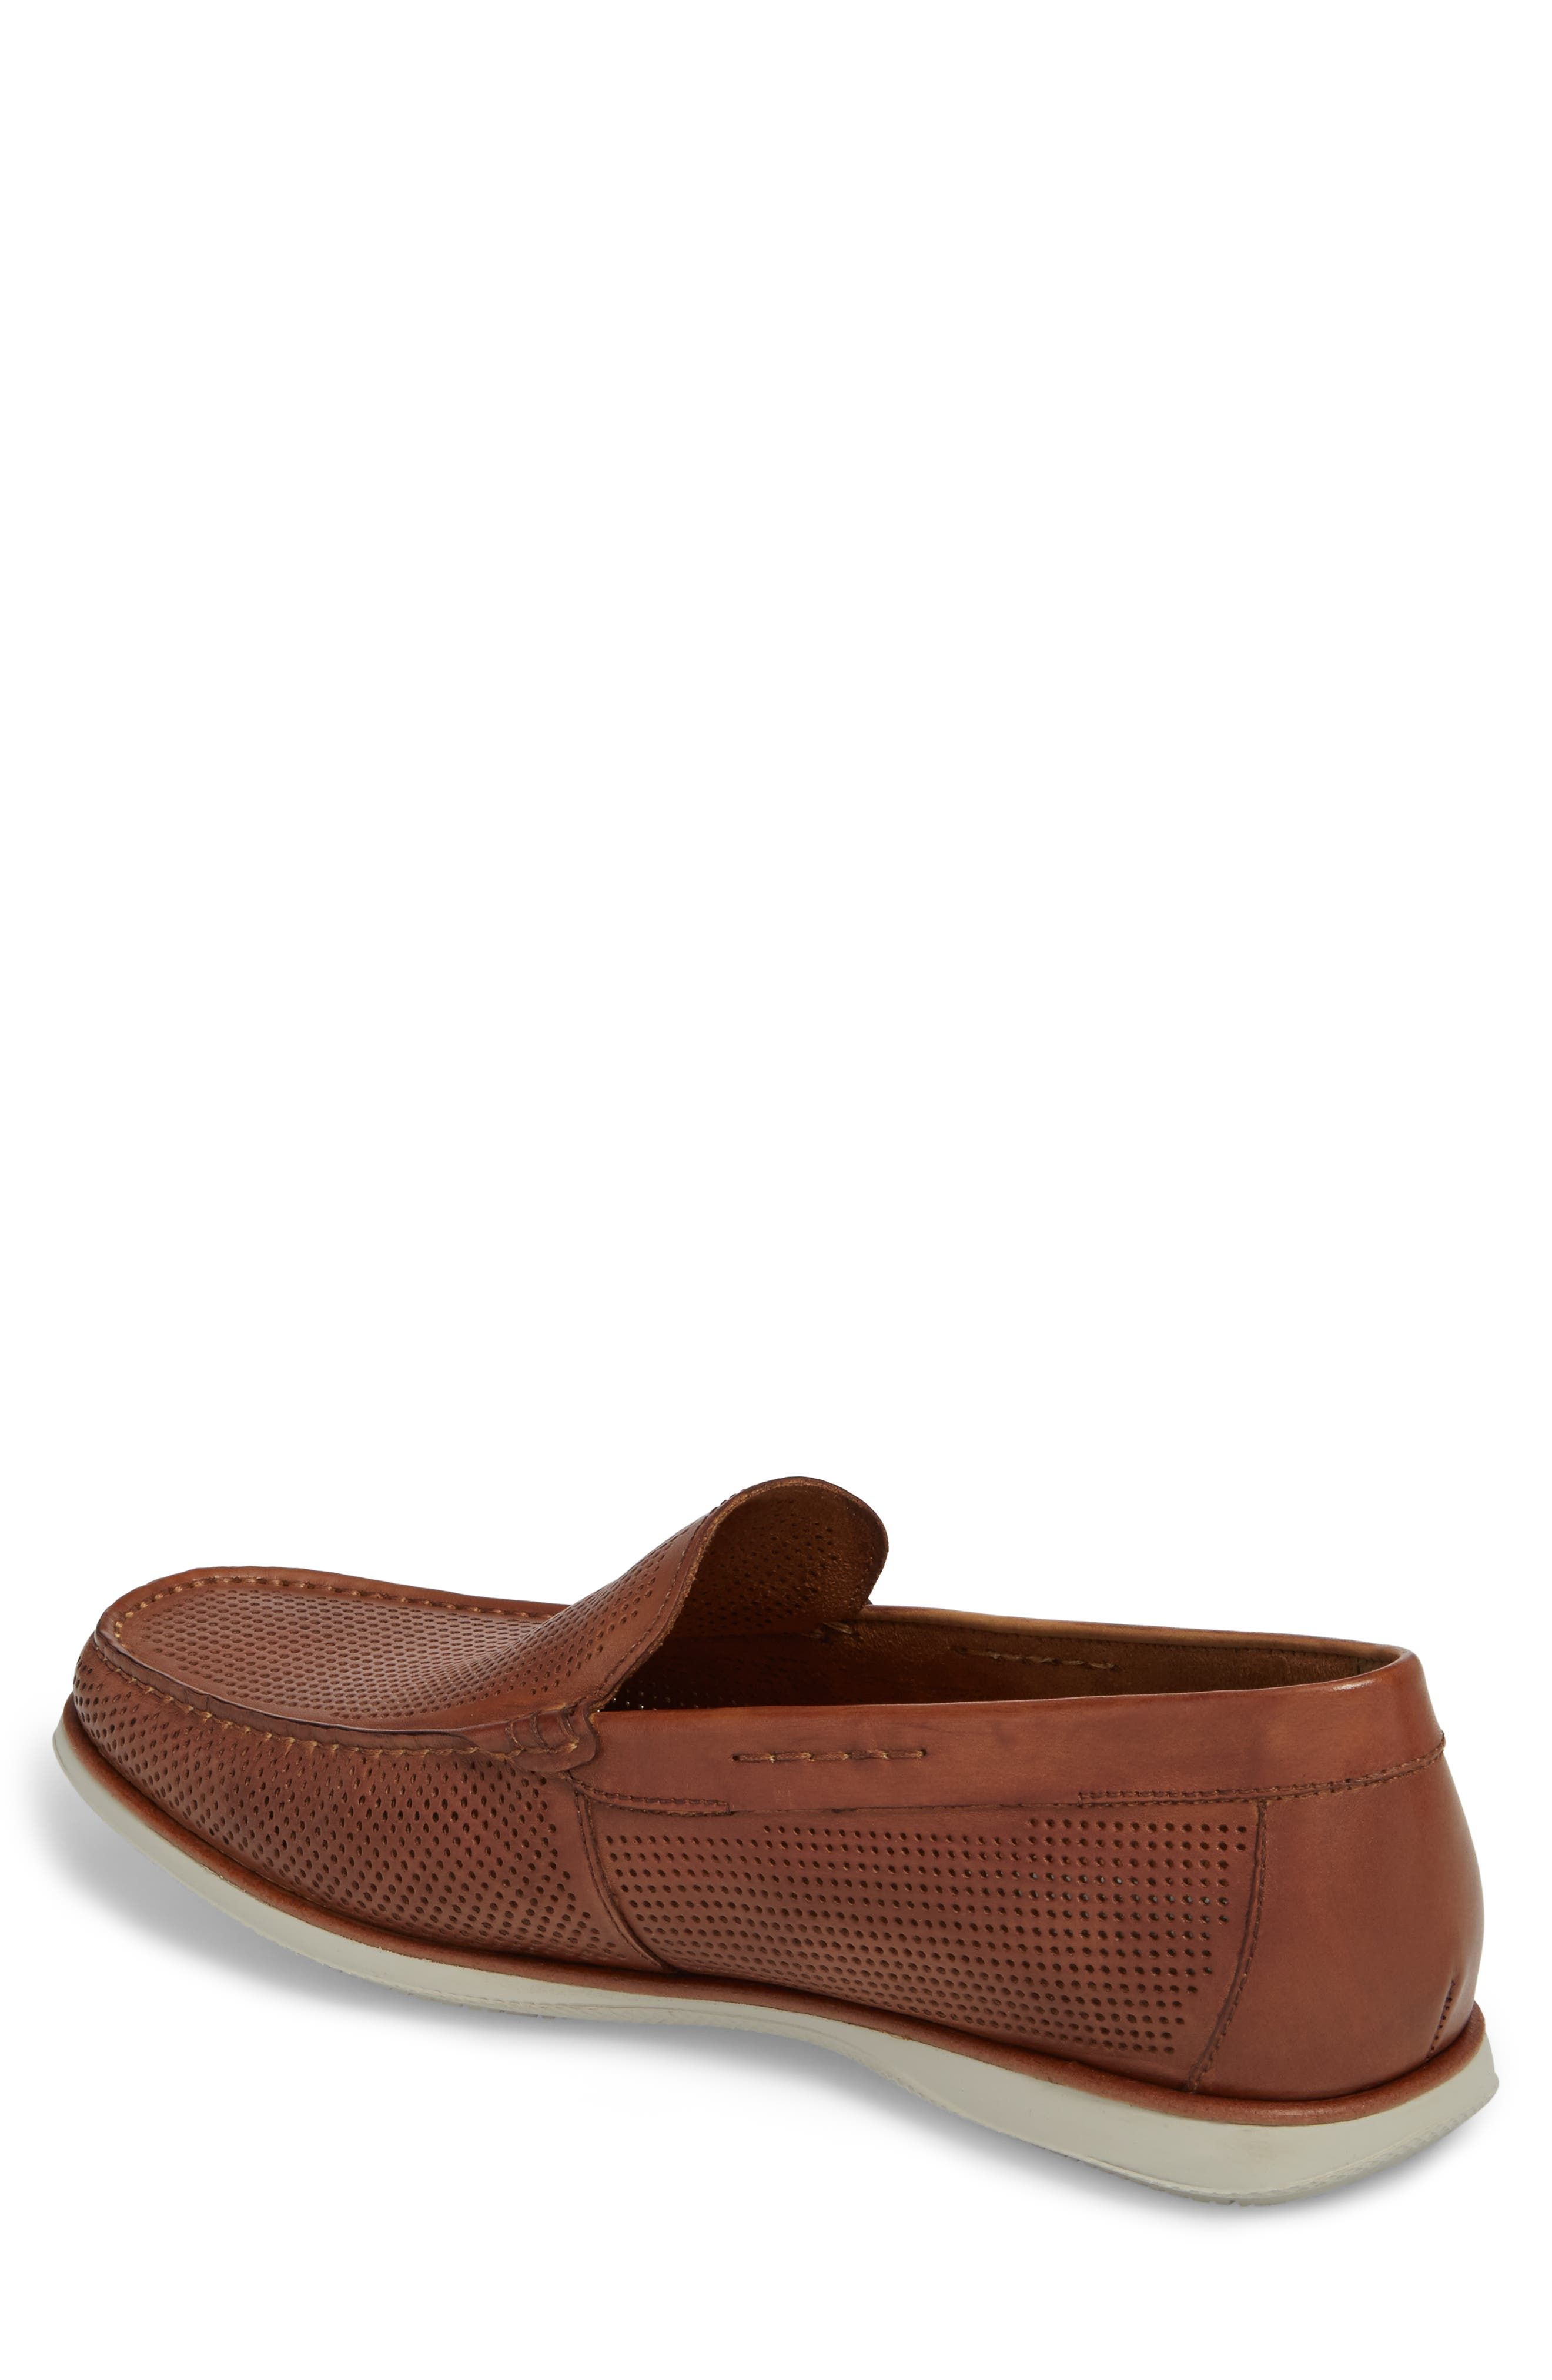 Cyrus Venetian Loafer,                             Alternate thumbnail 5, color,